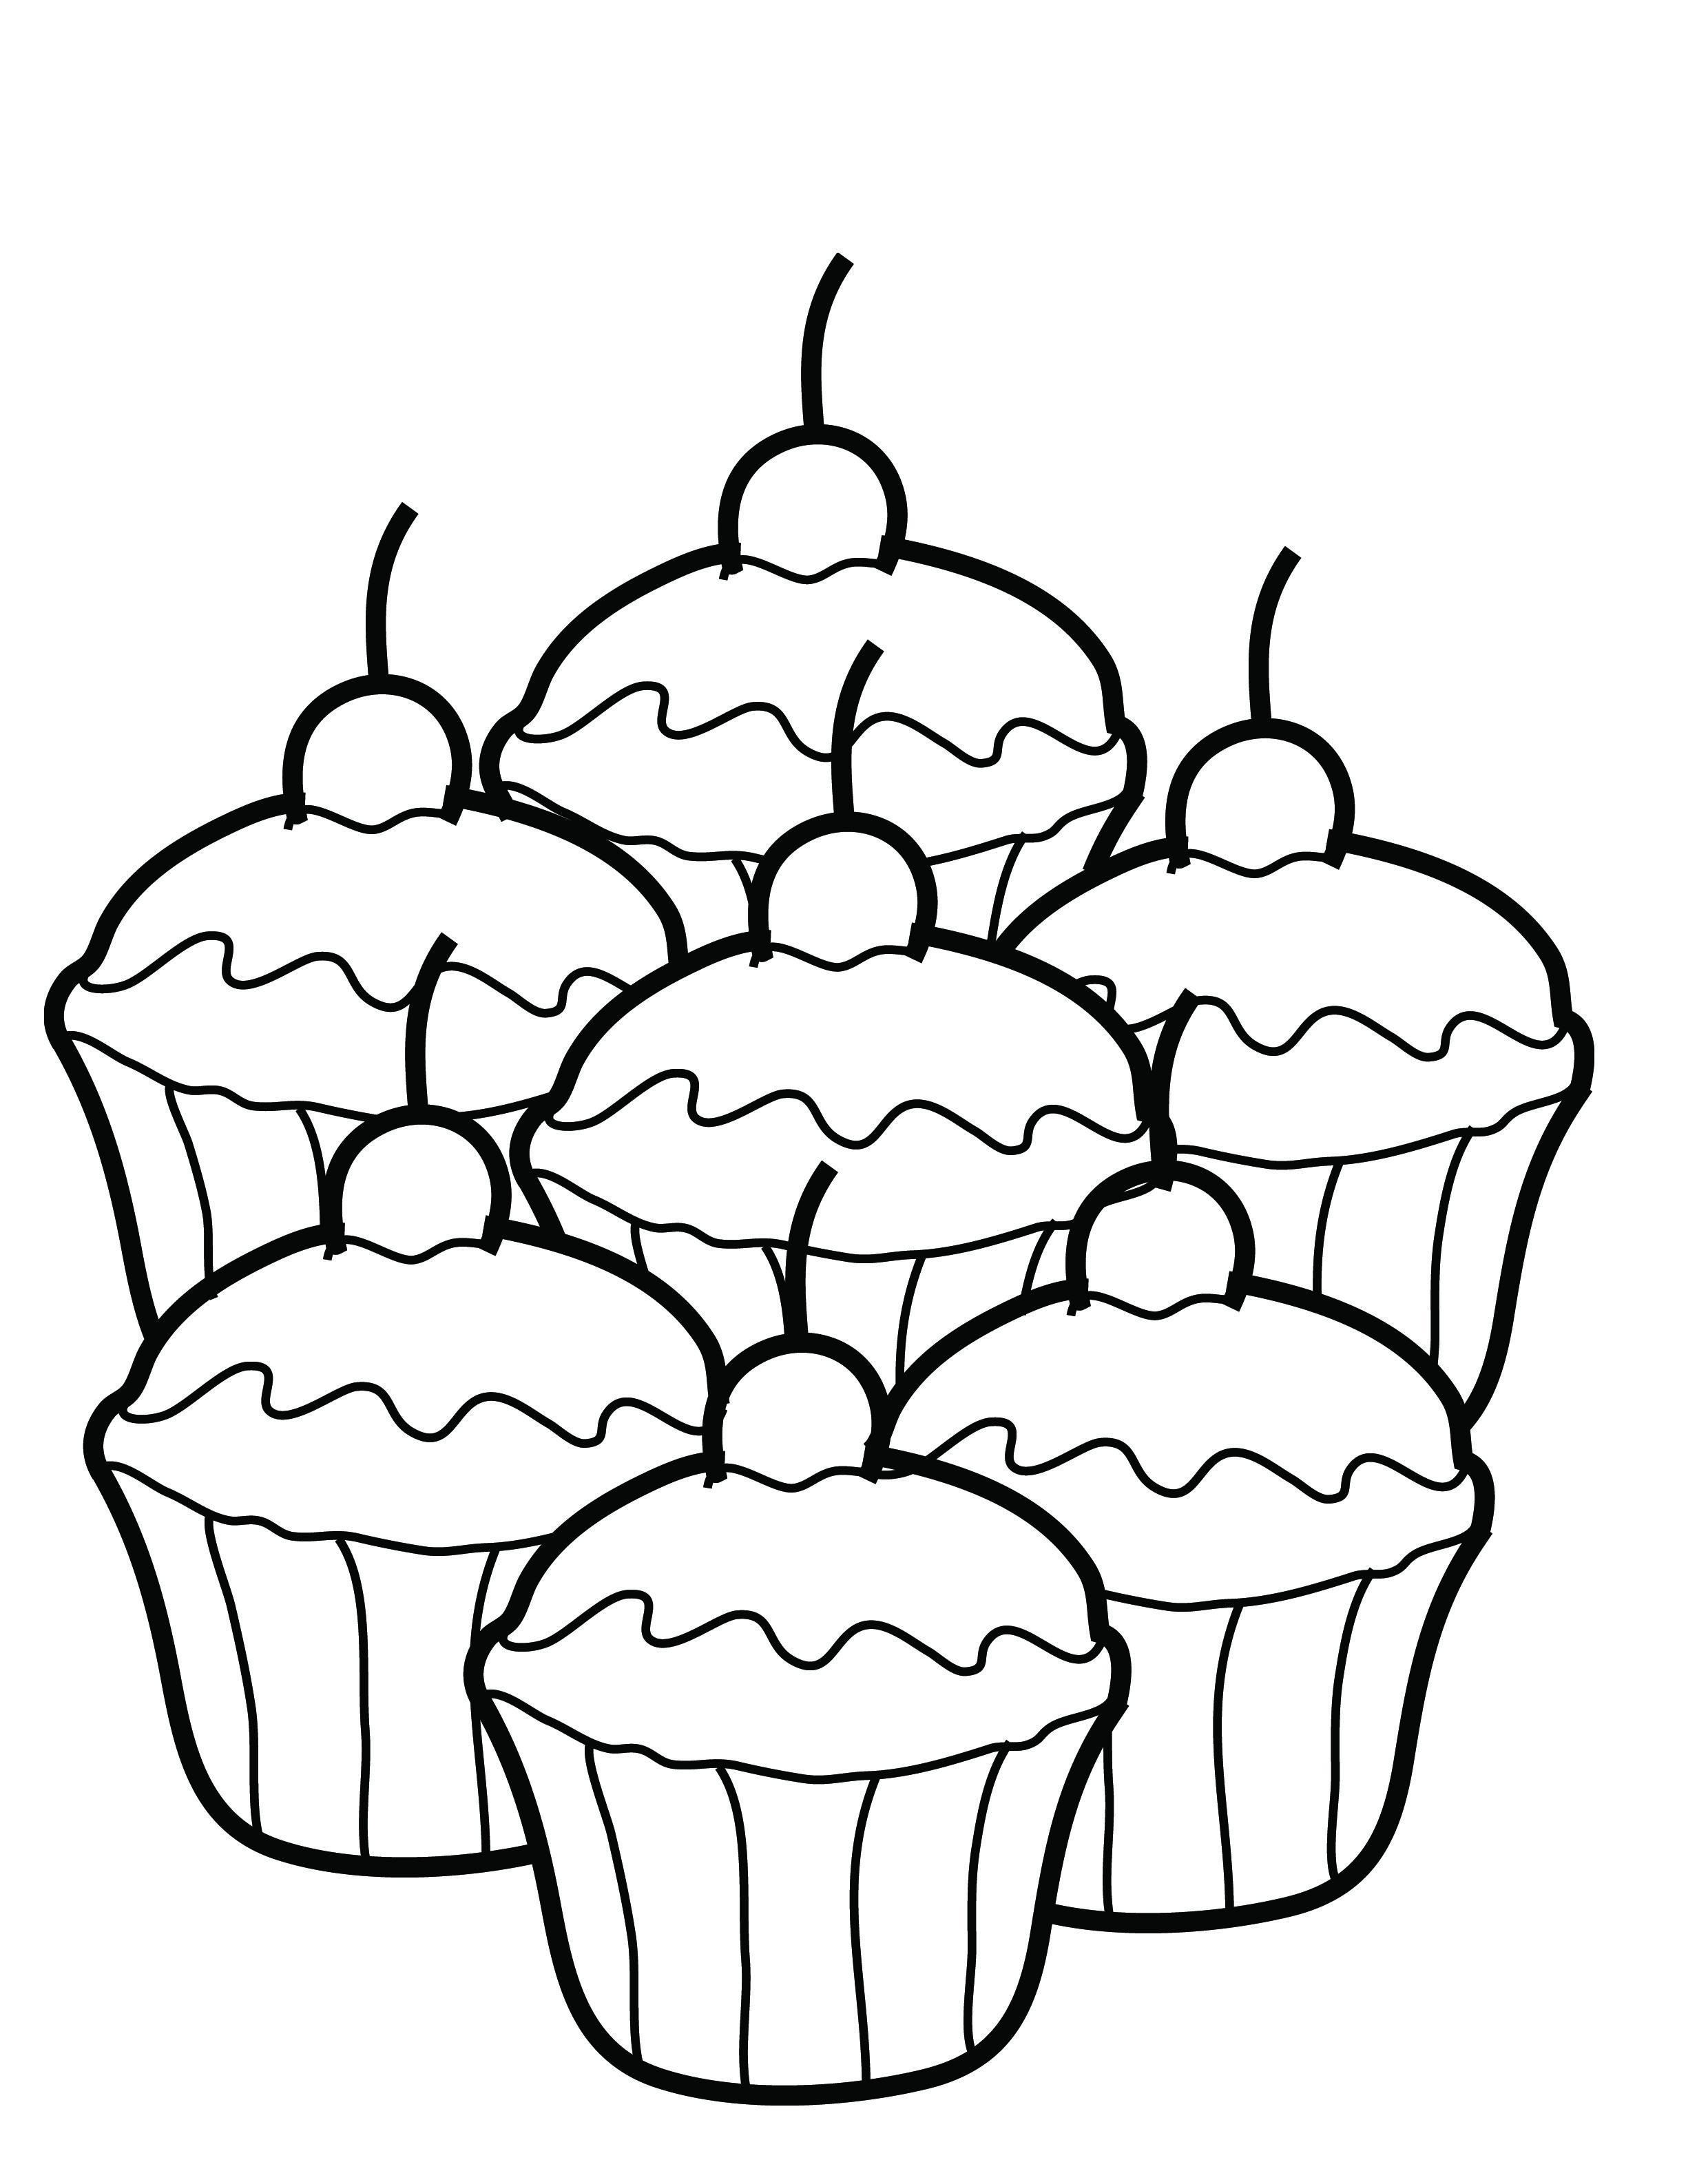 Muffin Coloring Page Coloring Home Muffin Coloring Page